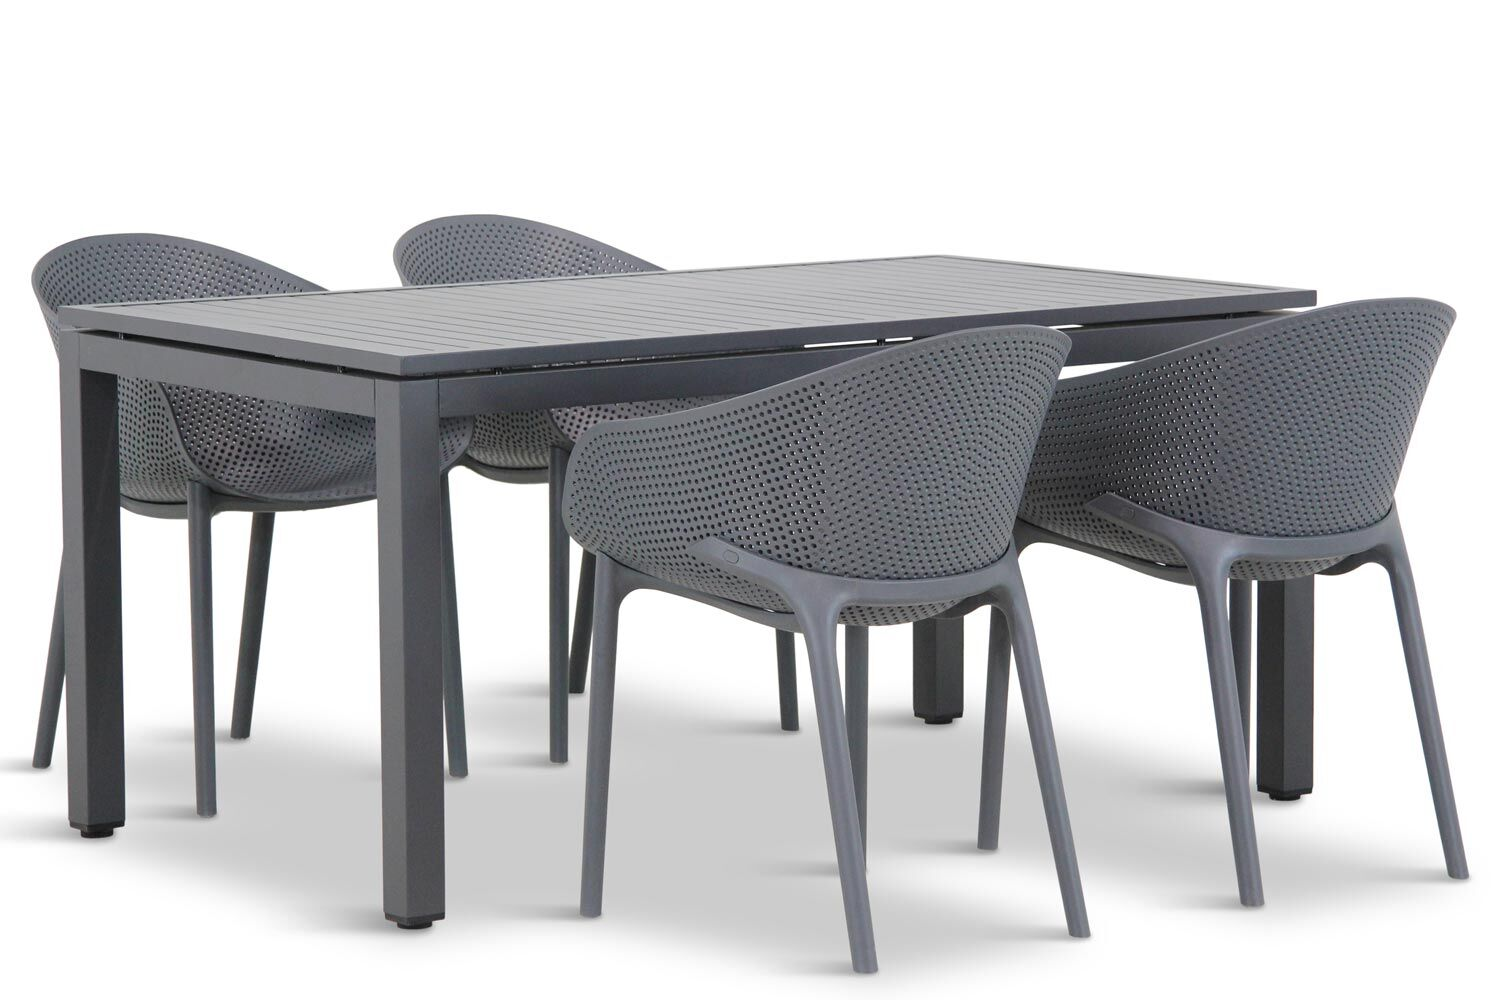 Lifestyle Sky/Concept 160 cm dining tuinset 5-delig